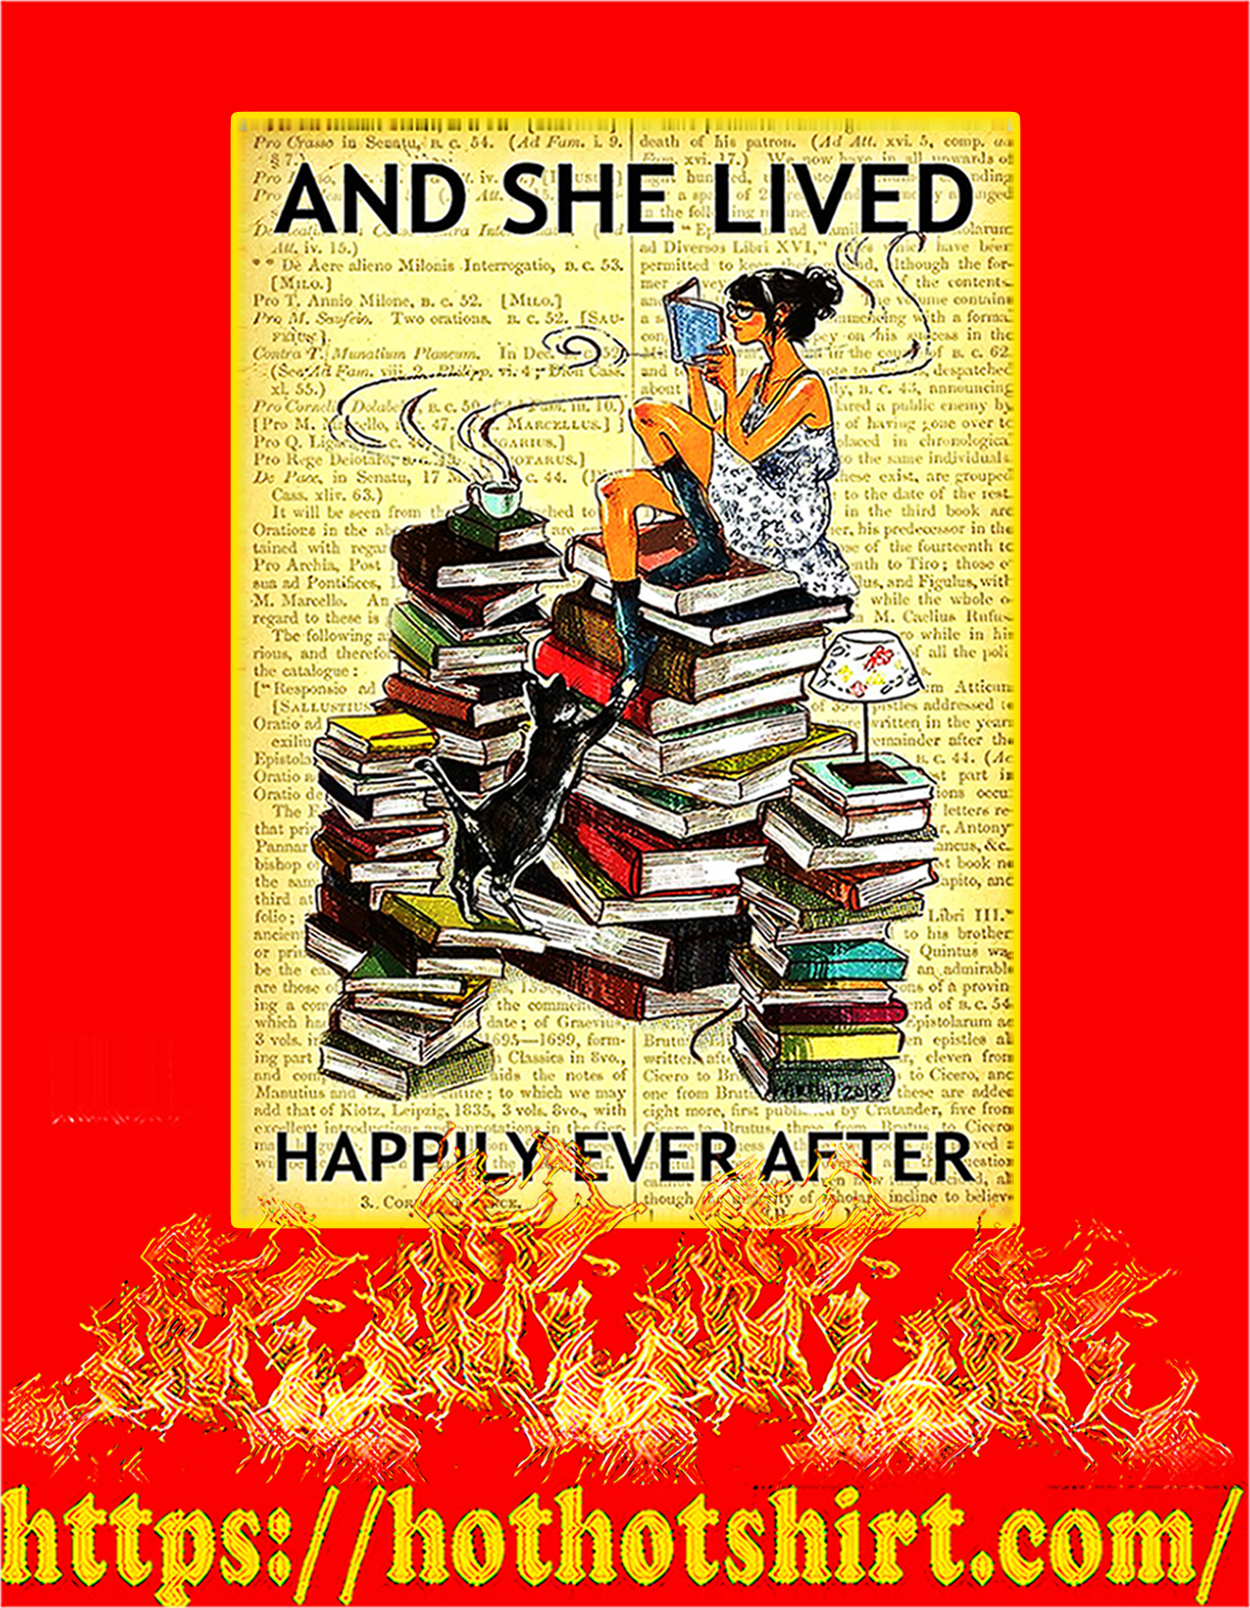 Book and cat and she lived happily ever after poster - A3